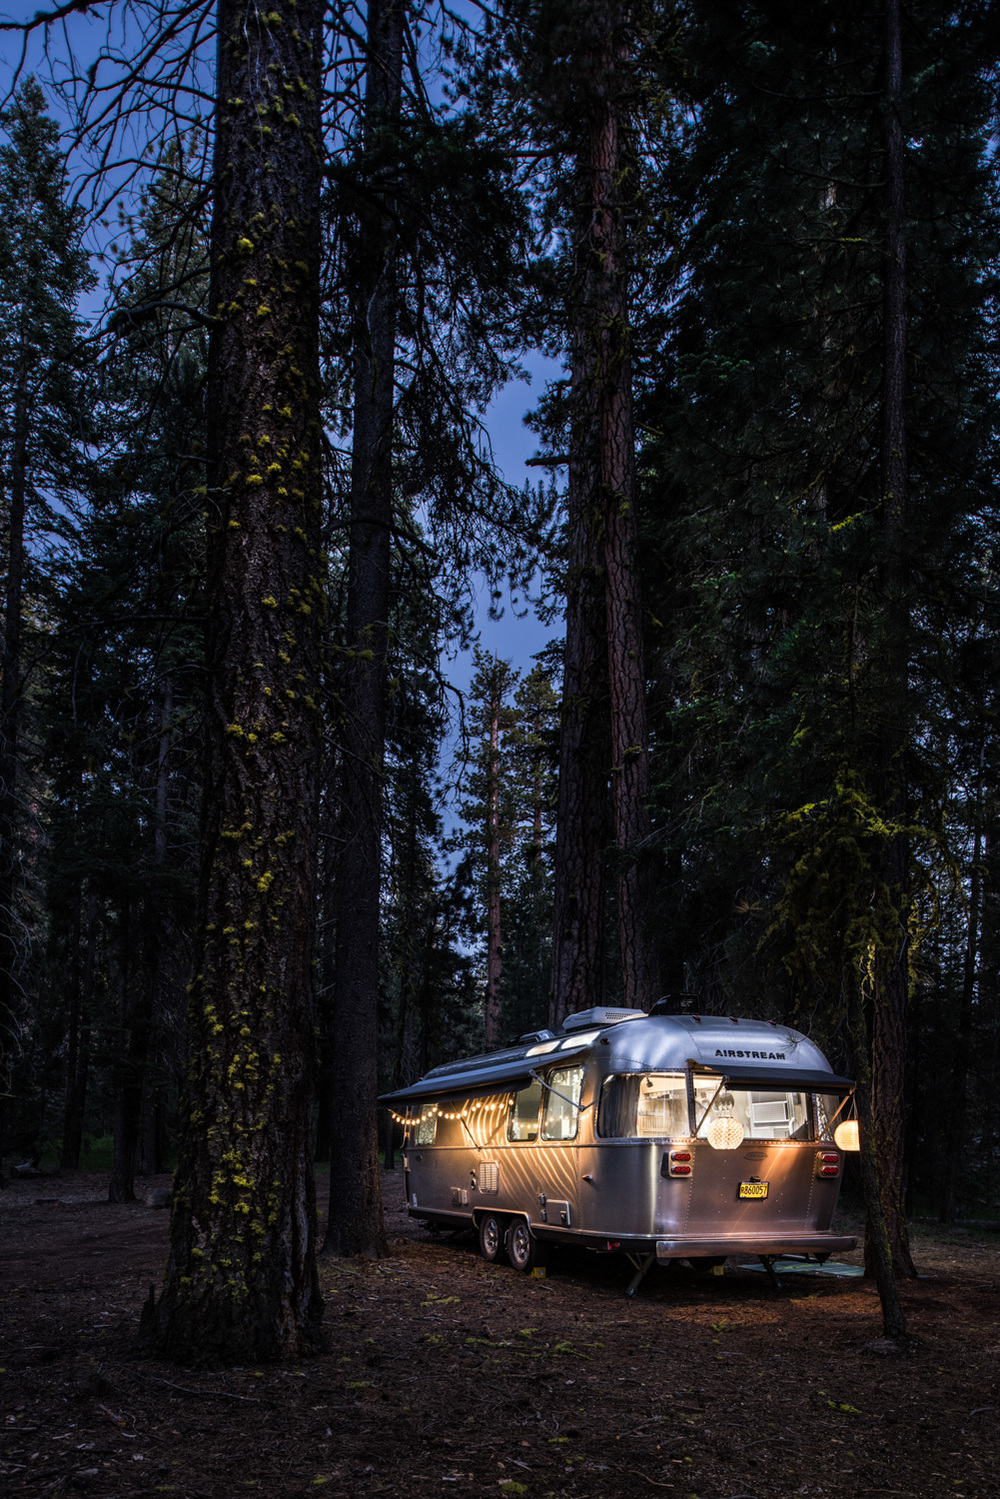 Such a pretty glowing Airstream!